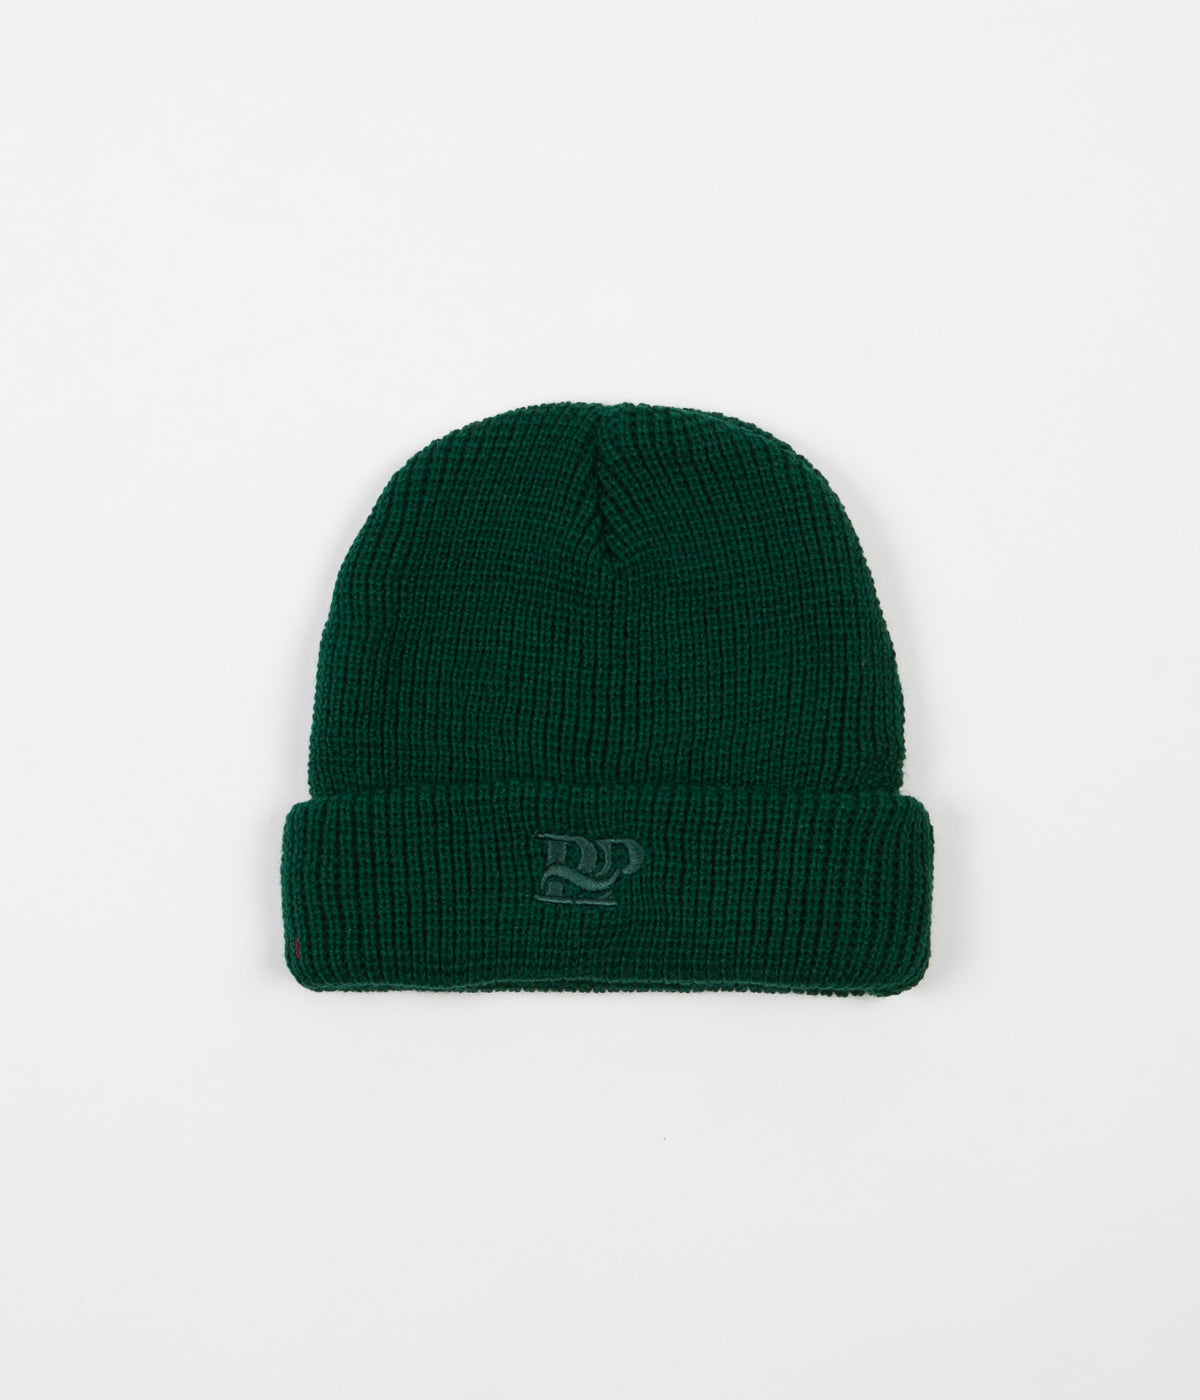 Pass Port Workers Beanie - Forest Green